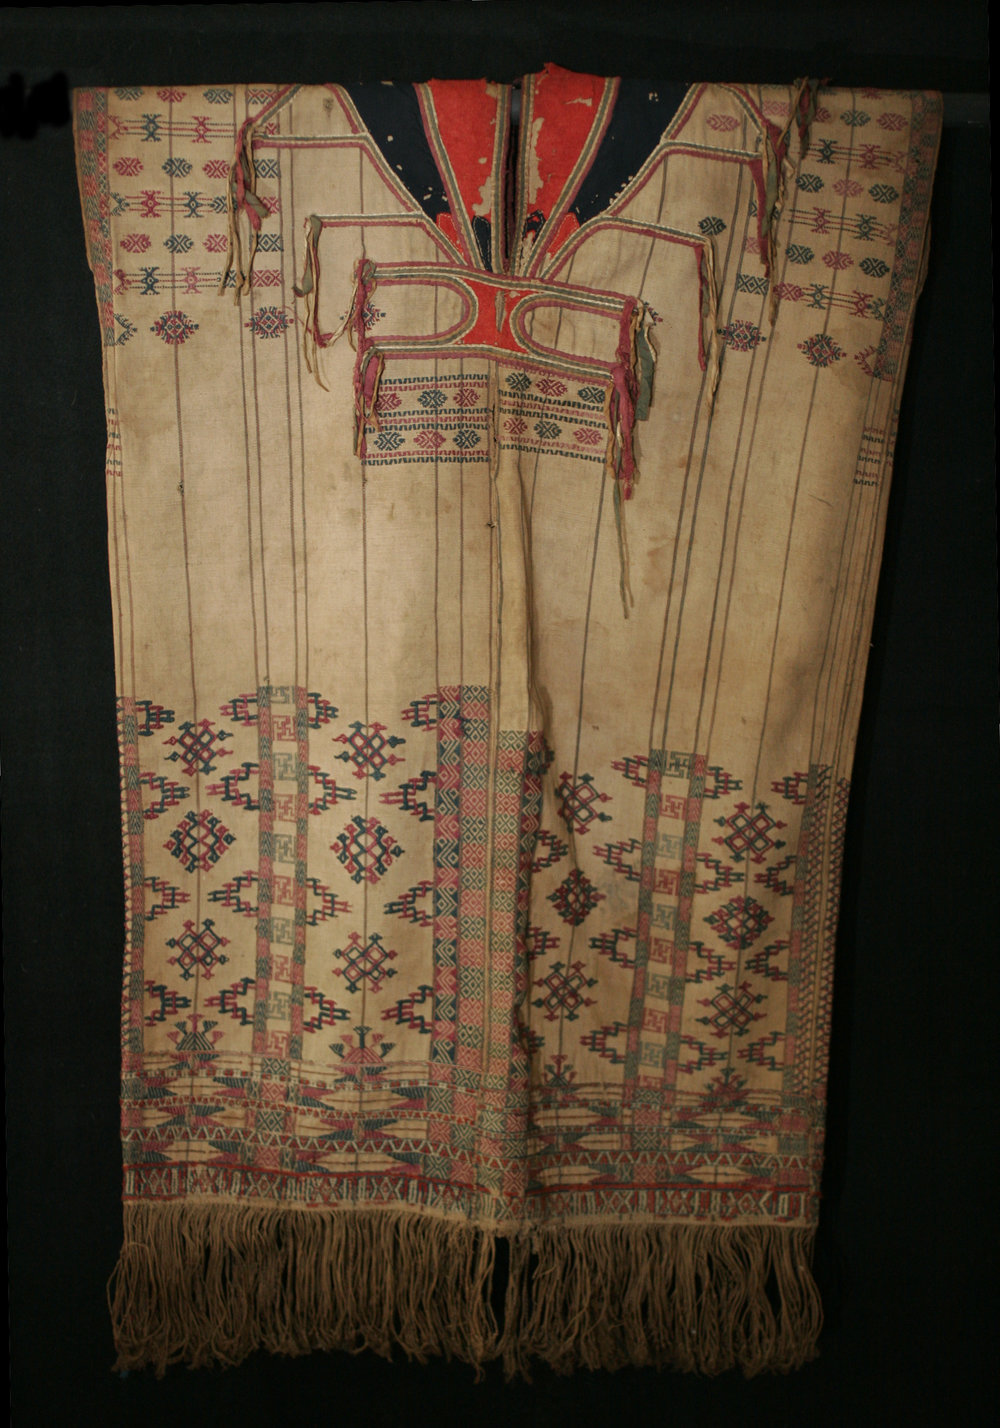 Tunic (kushan), Bhutan, 19th century.